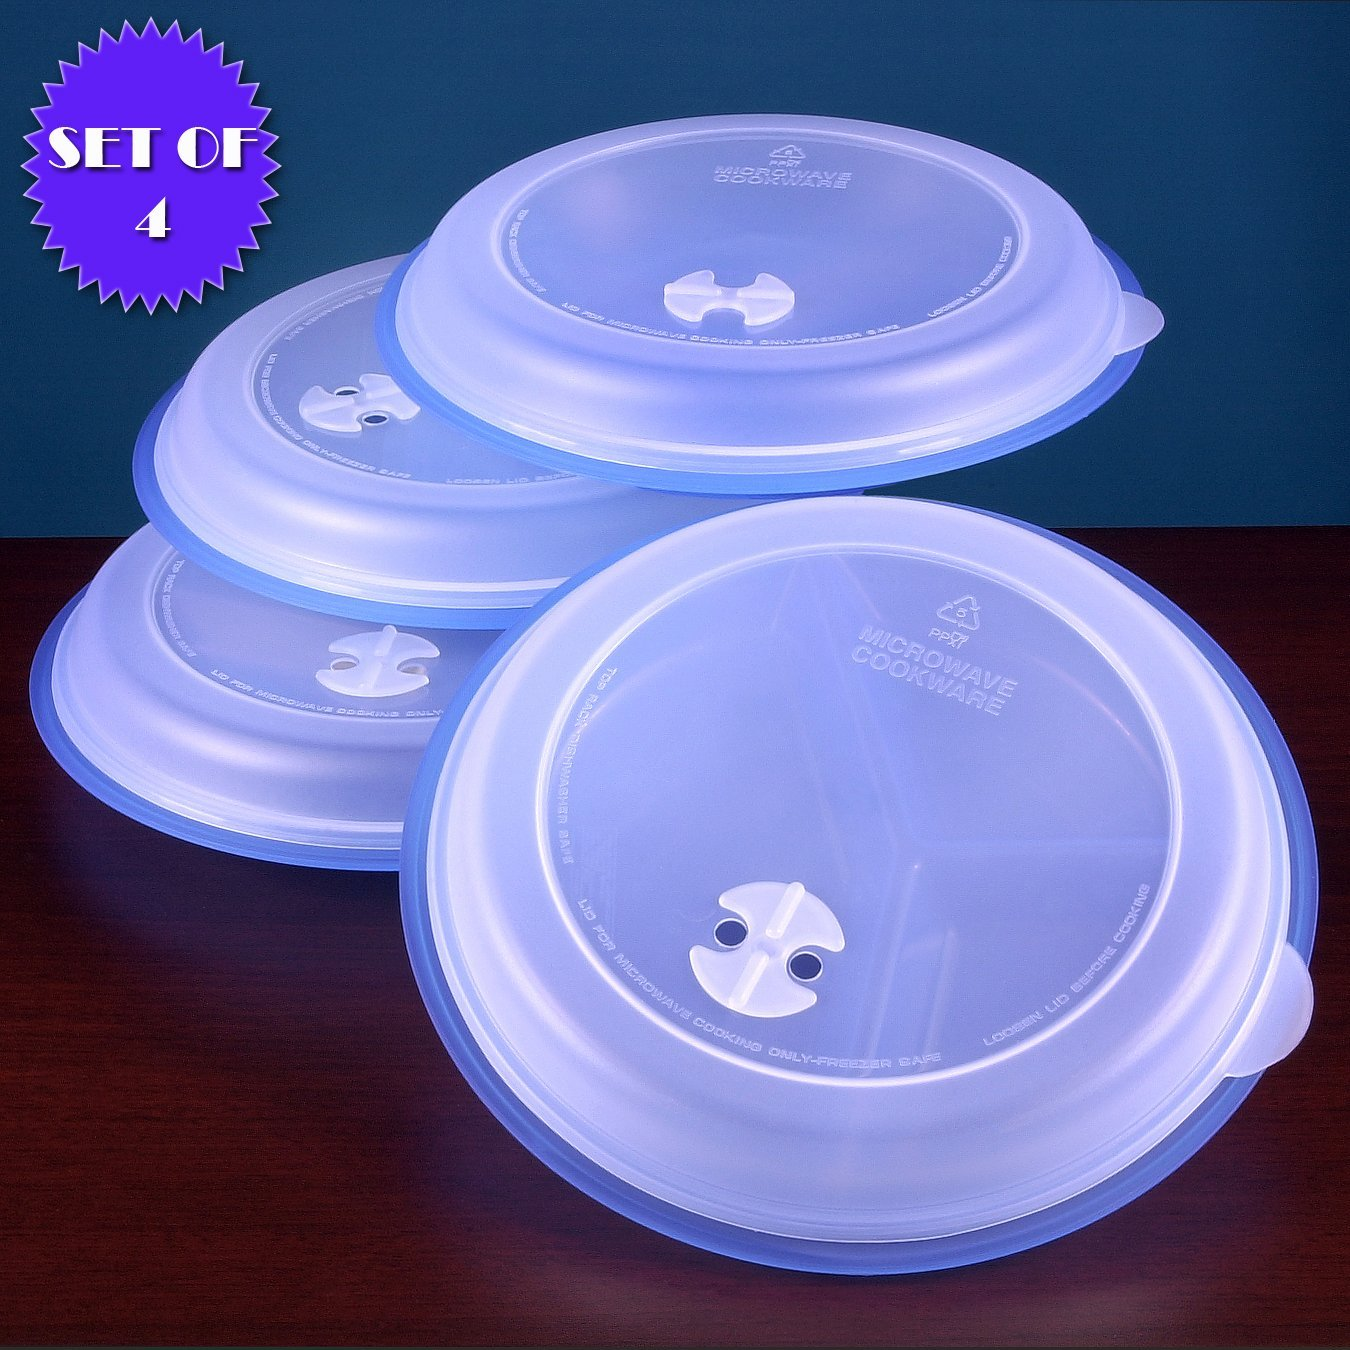 Microwave Divided Plates With Vented Lids & Microwave Divided Plates With Vented Lids - Walmart.com